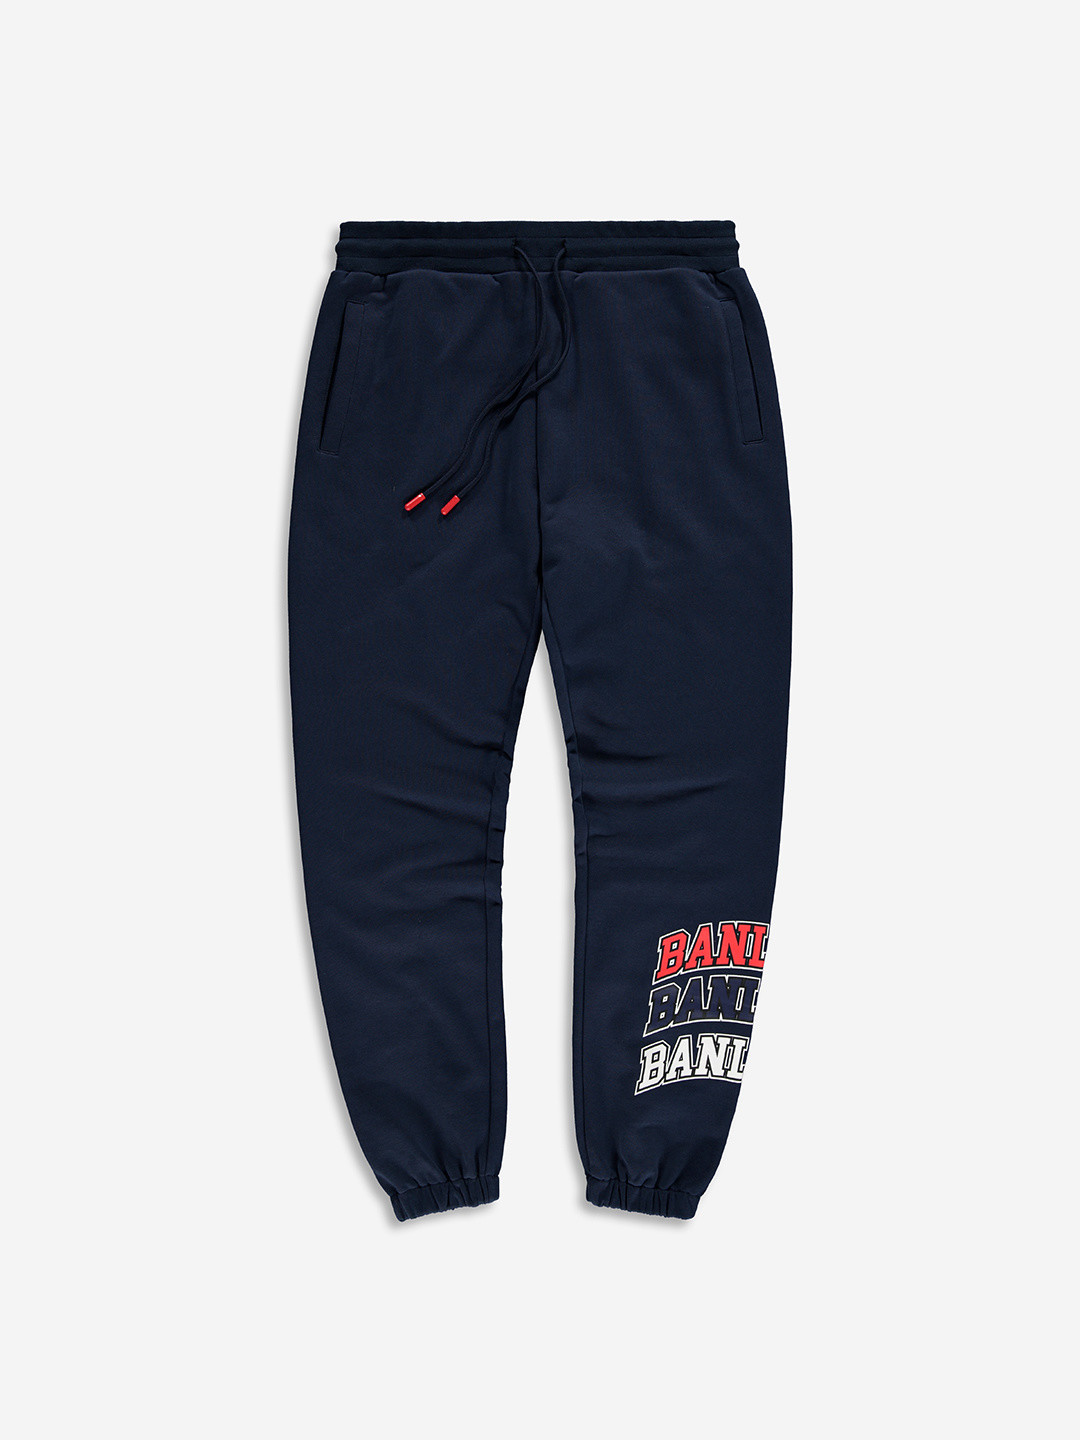 COLLEGE SWEATPANTS NAVY/RED